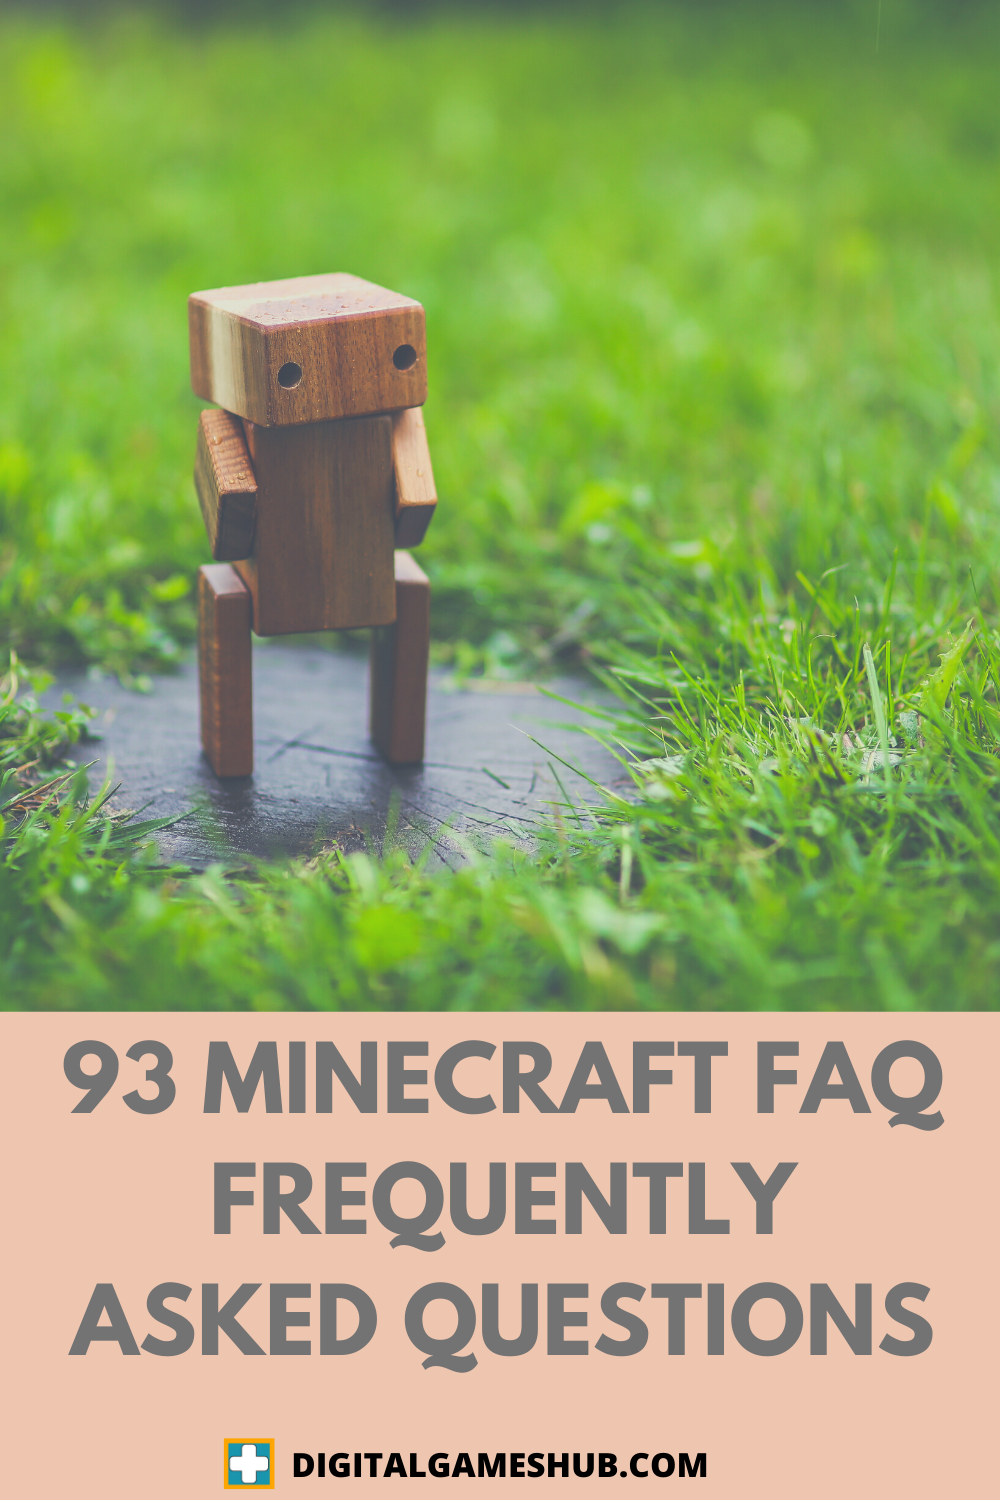 93 Minecraft FAQ Frequently Asked Questions Feature Image